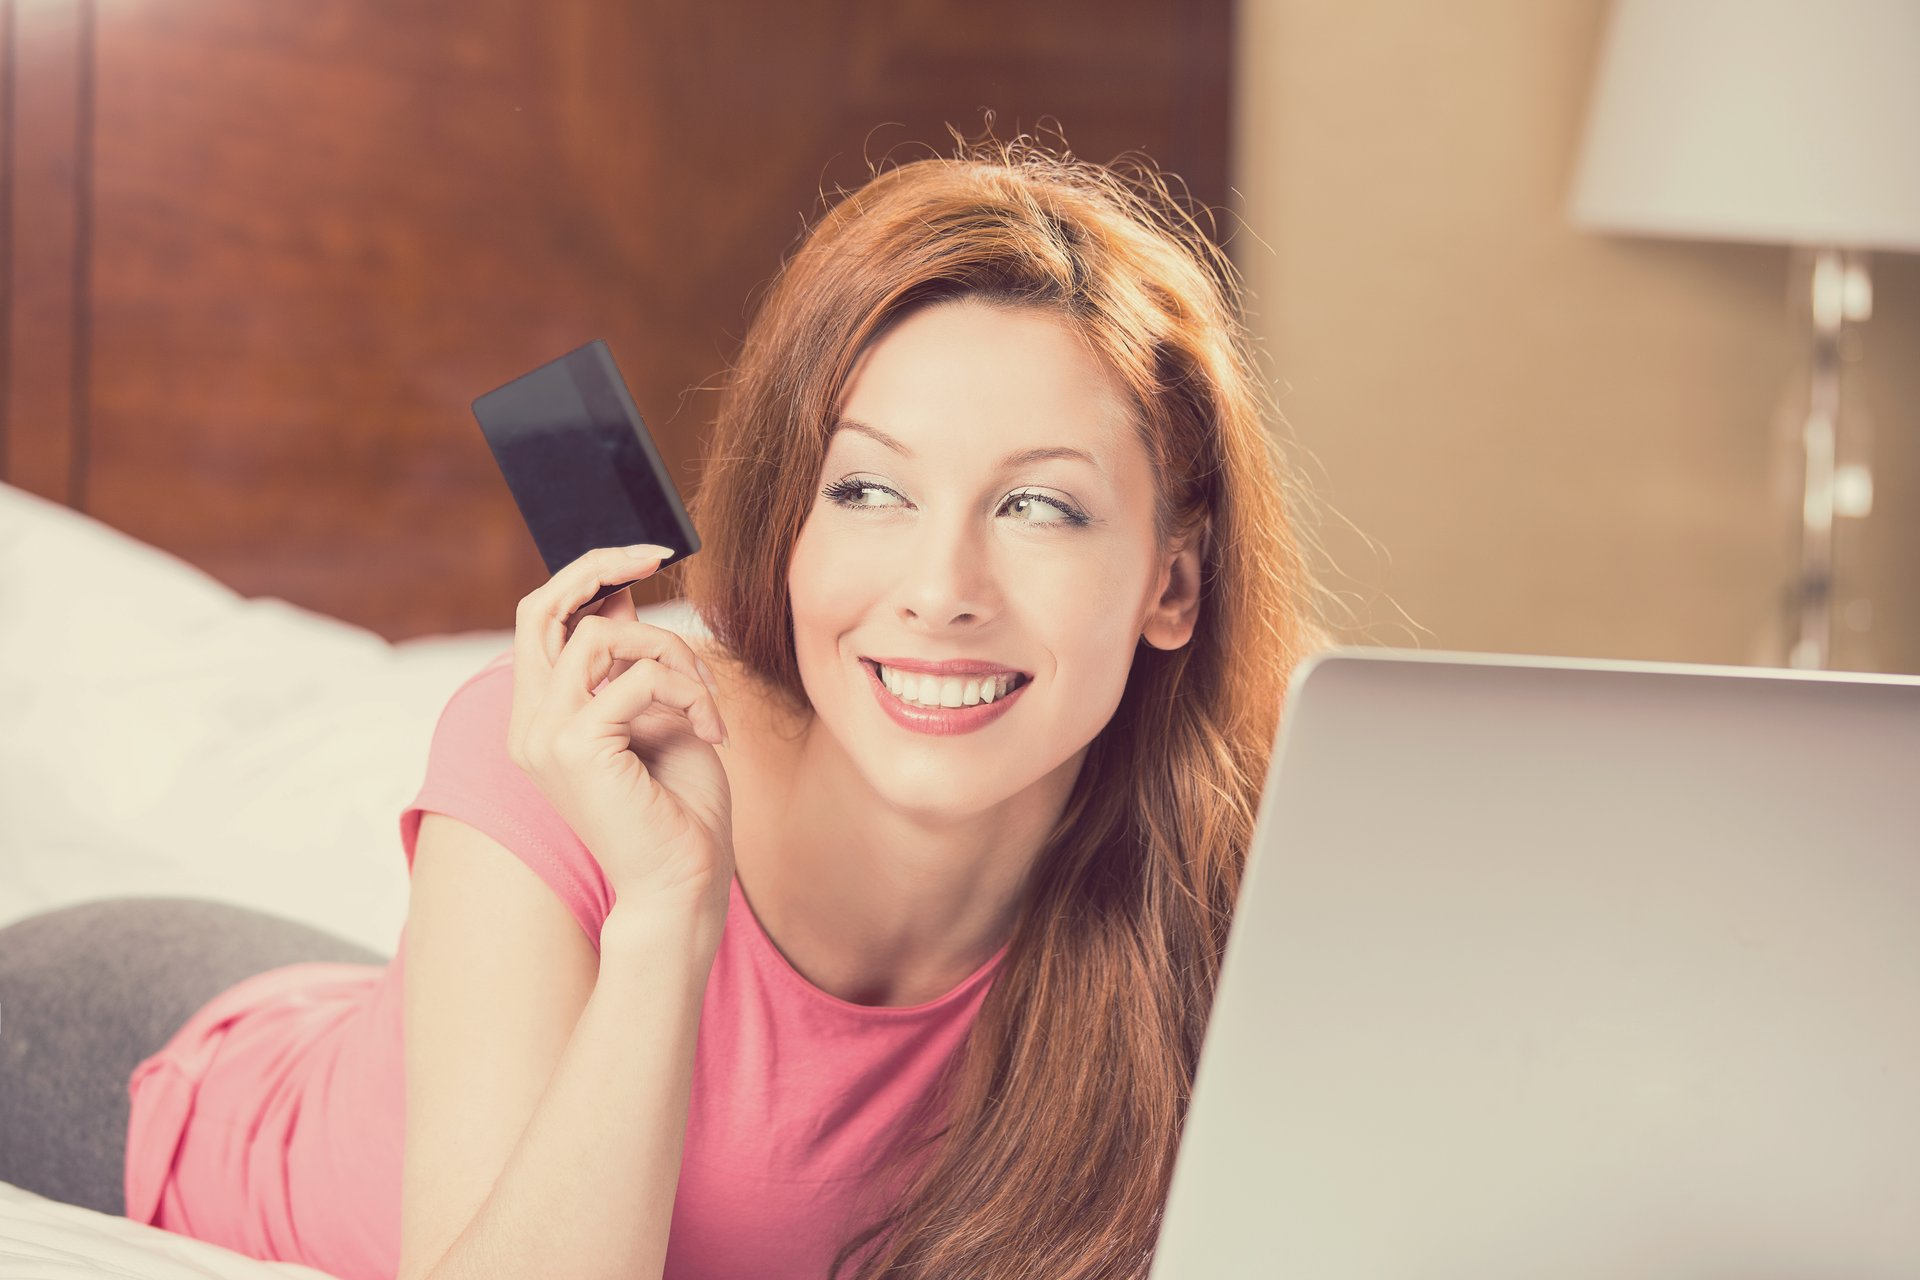 Woman holding credit card, looking at computer